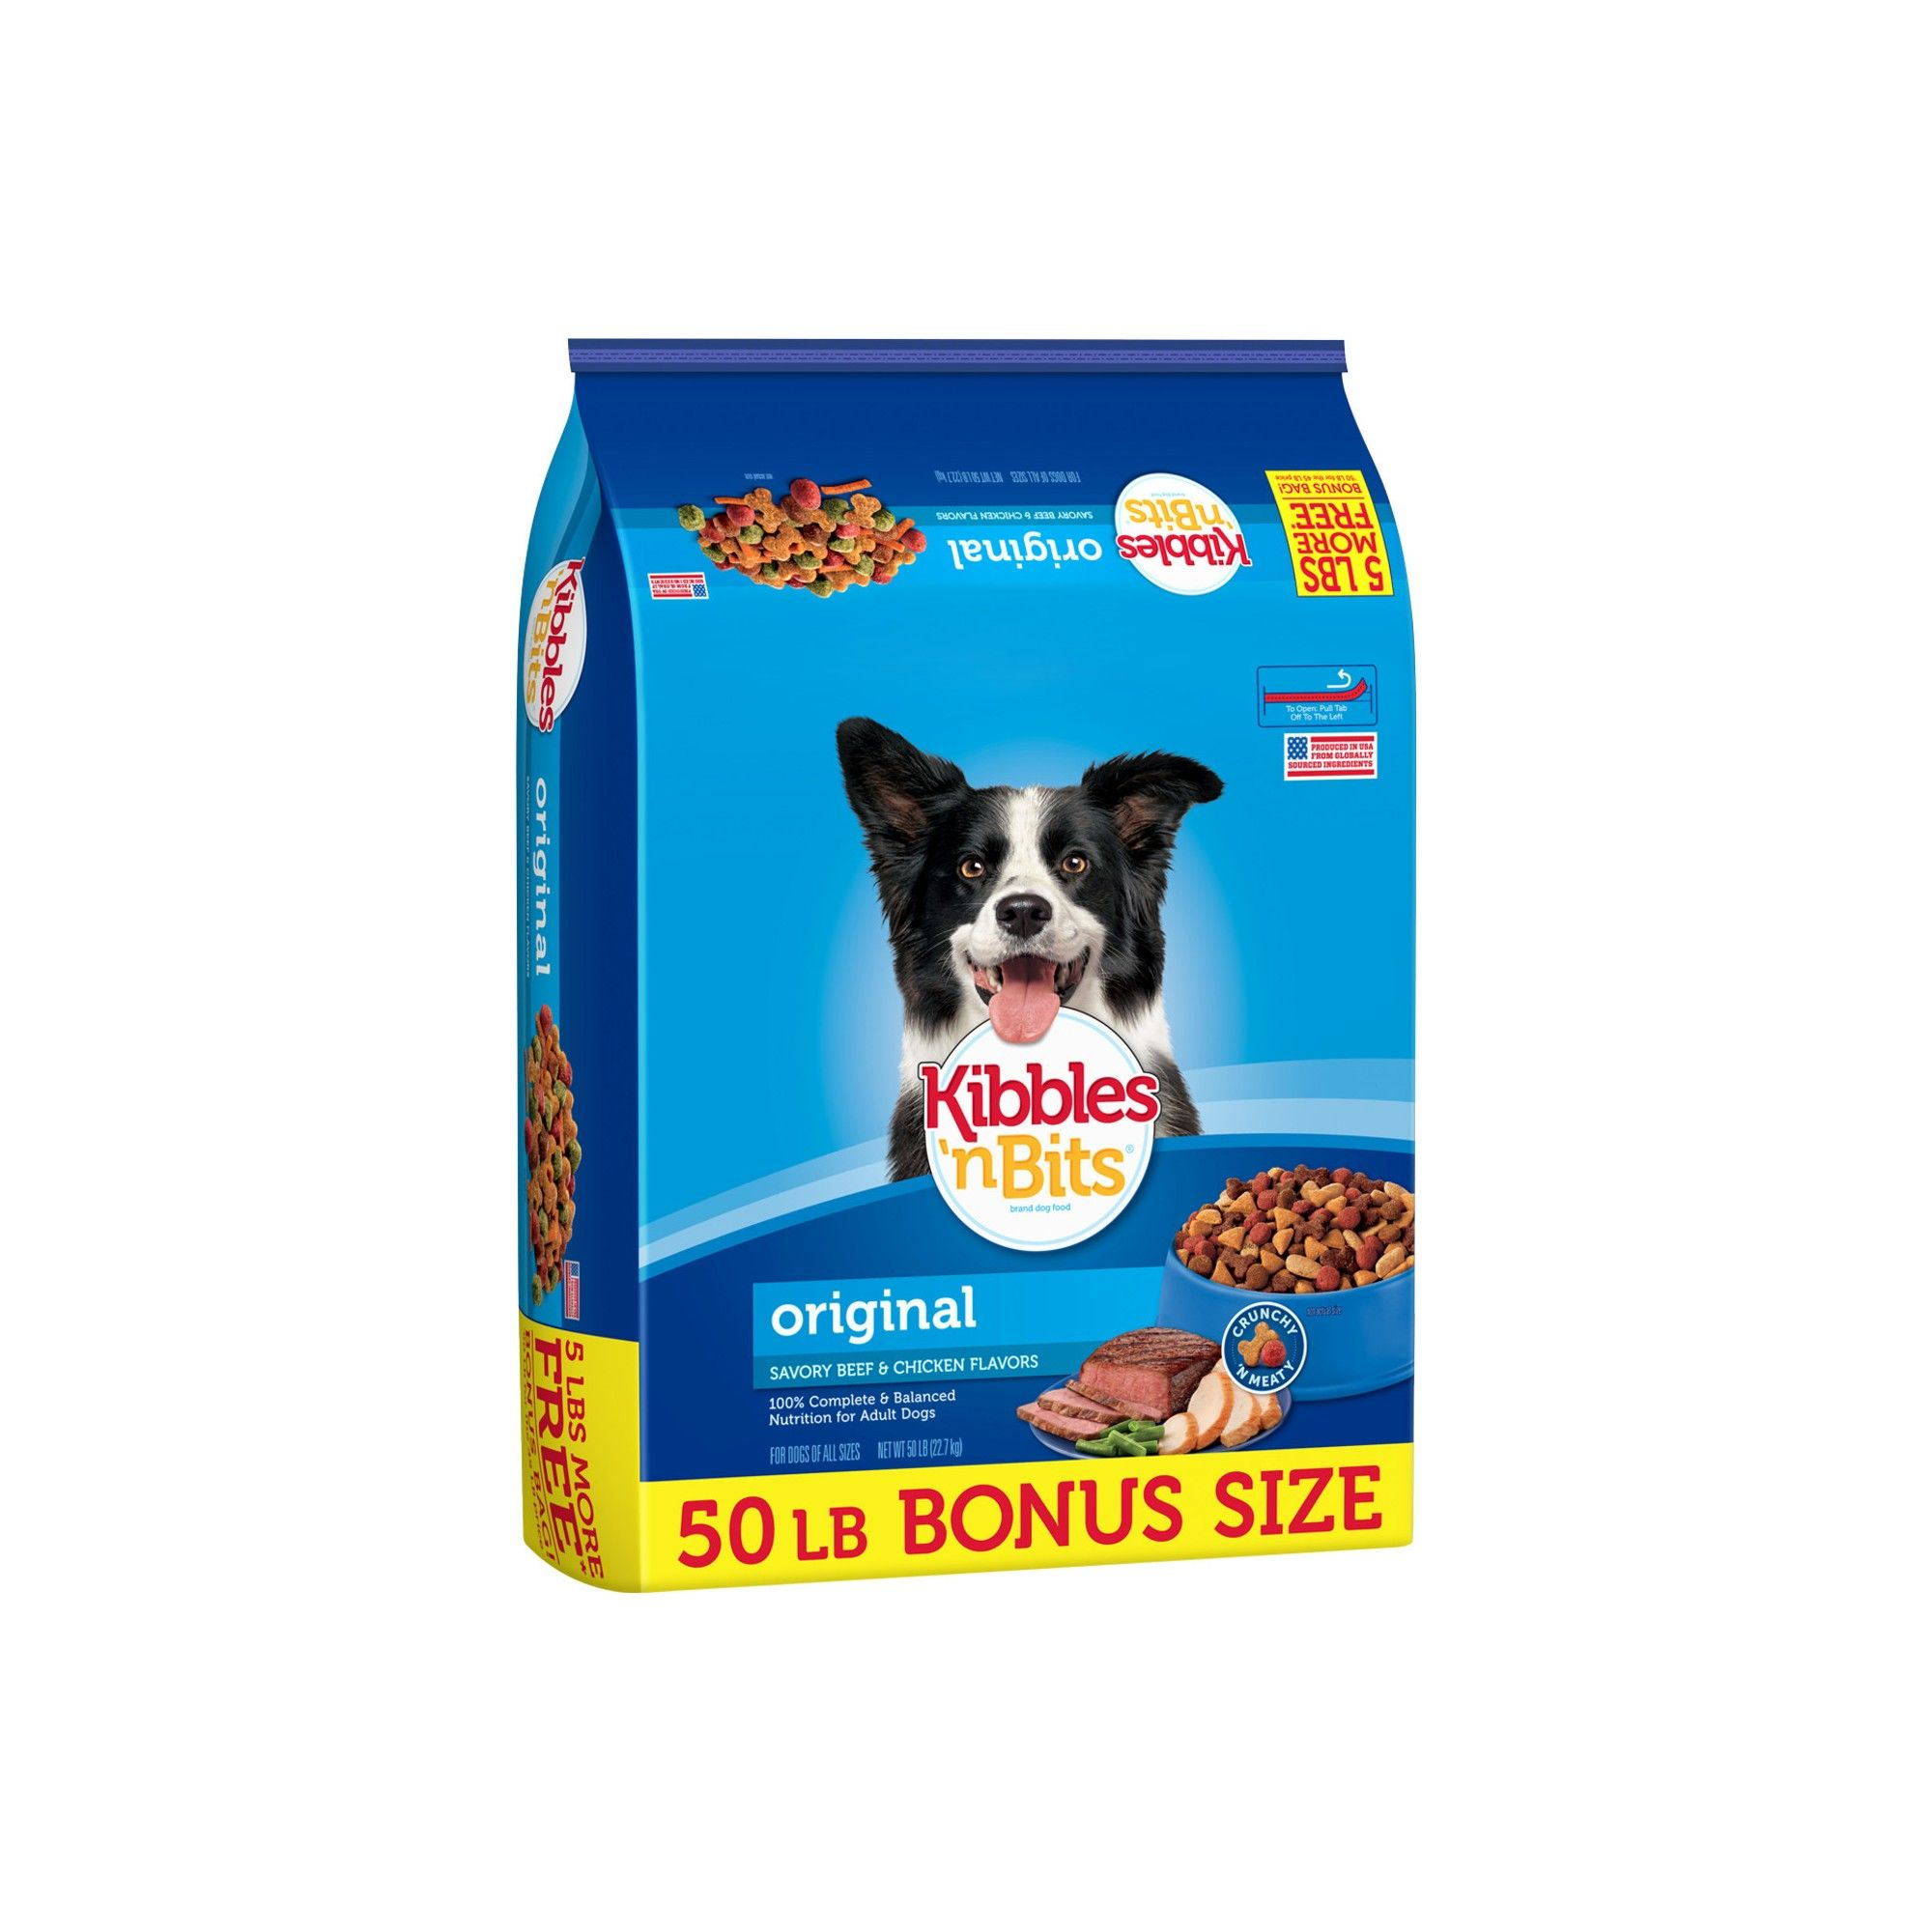 Kibbles N Bits Original Savory Beef And Chicken Dry Dog Food